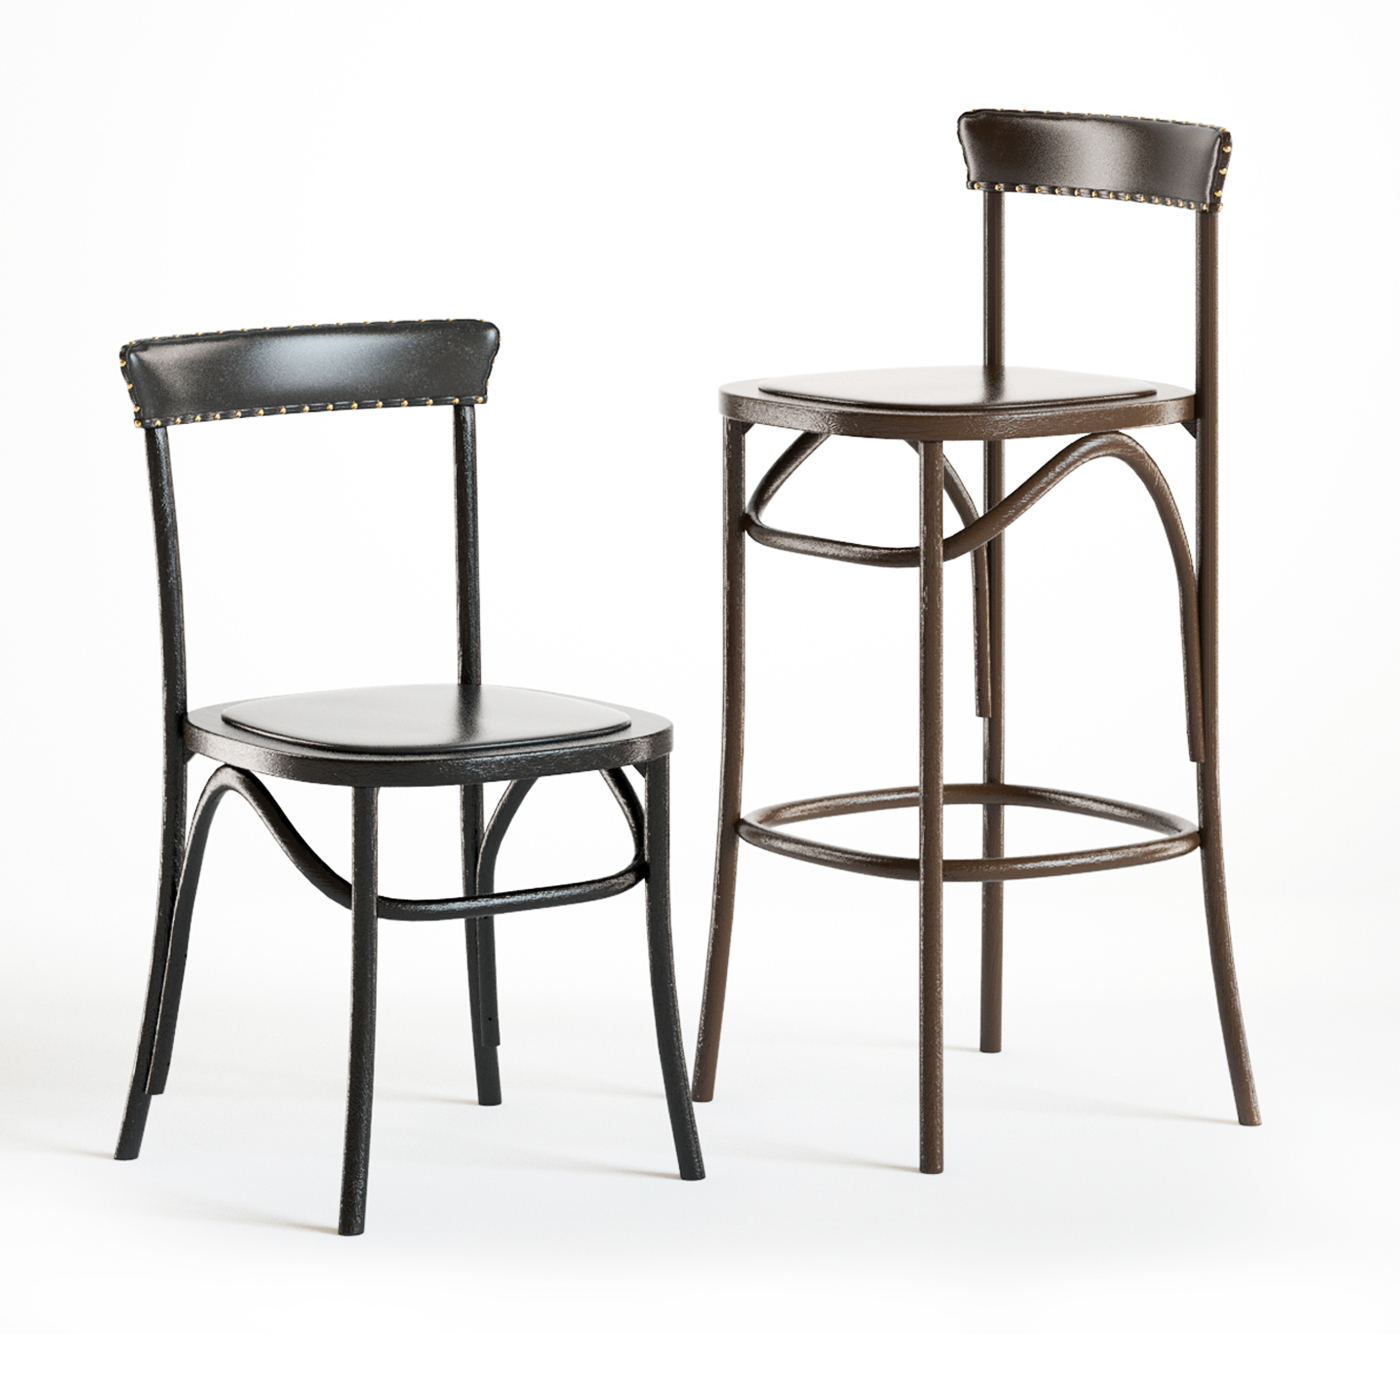 Pottery Barn Lucas Chairs